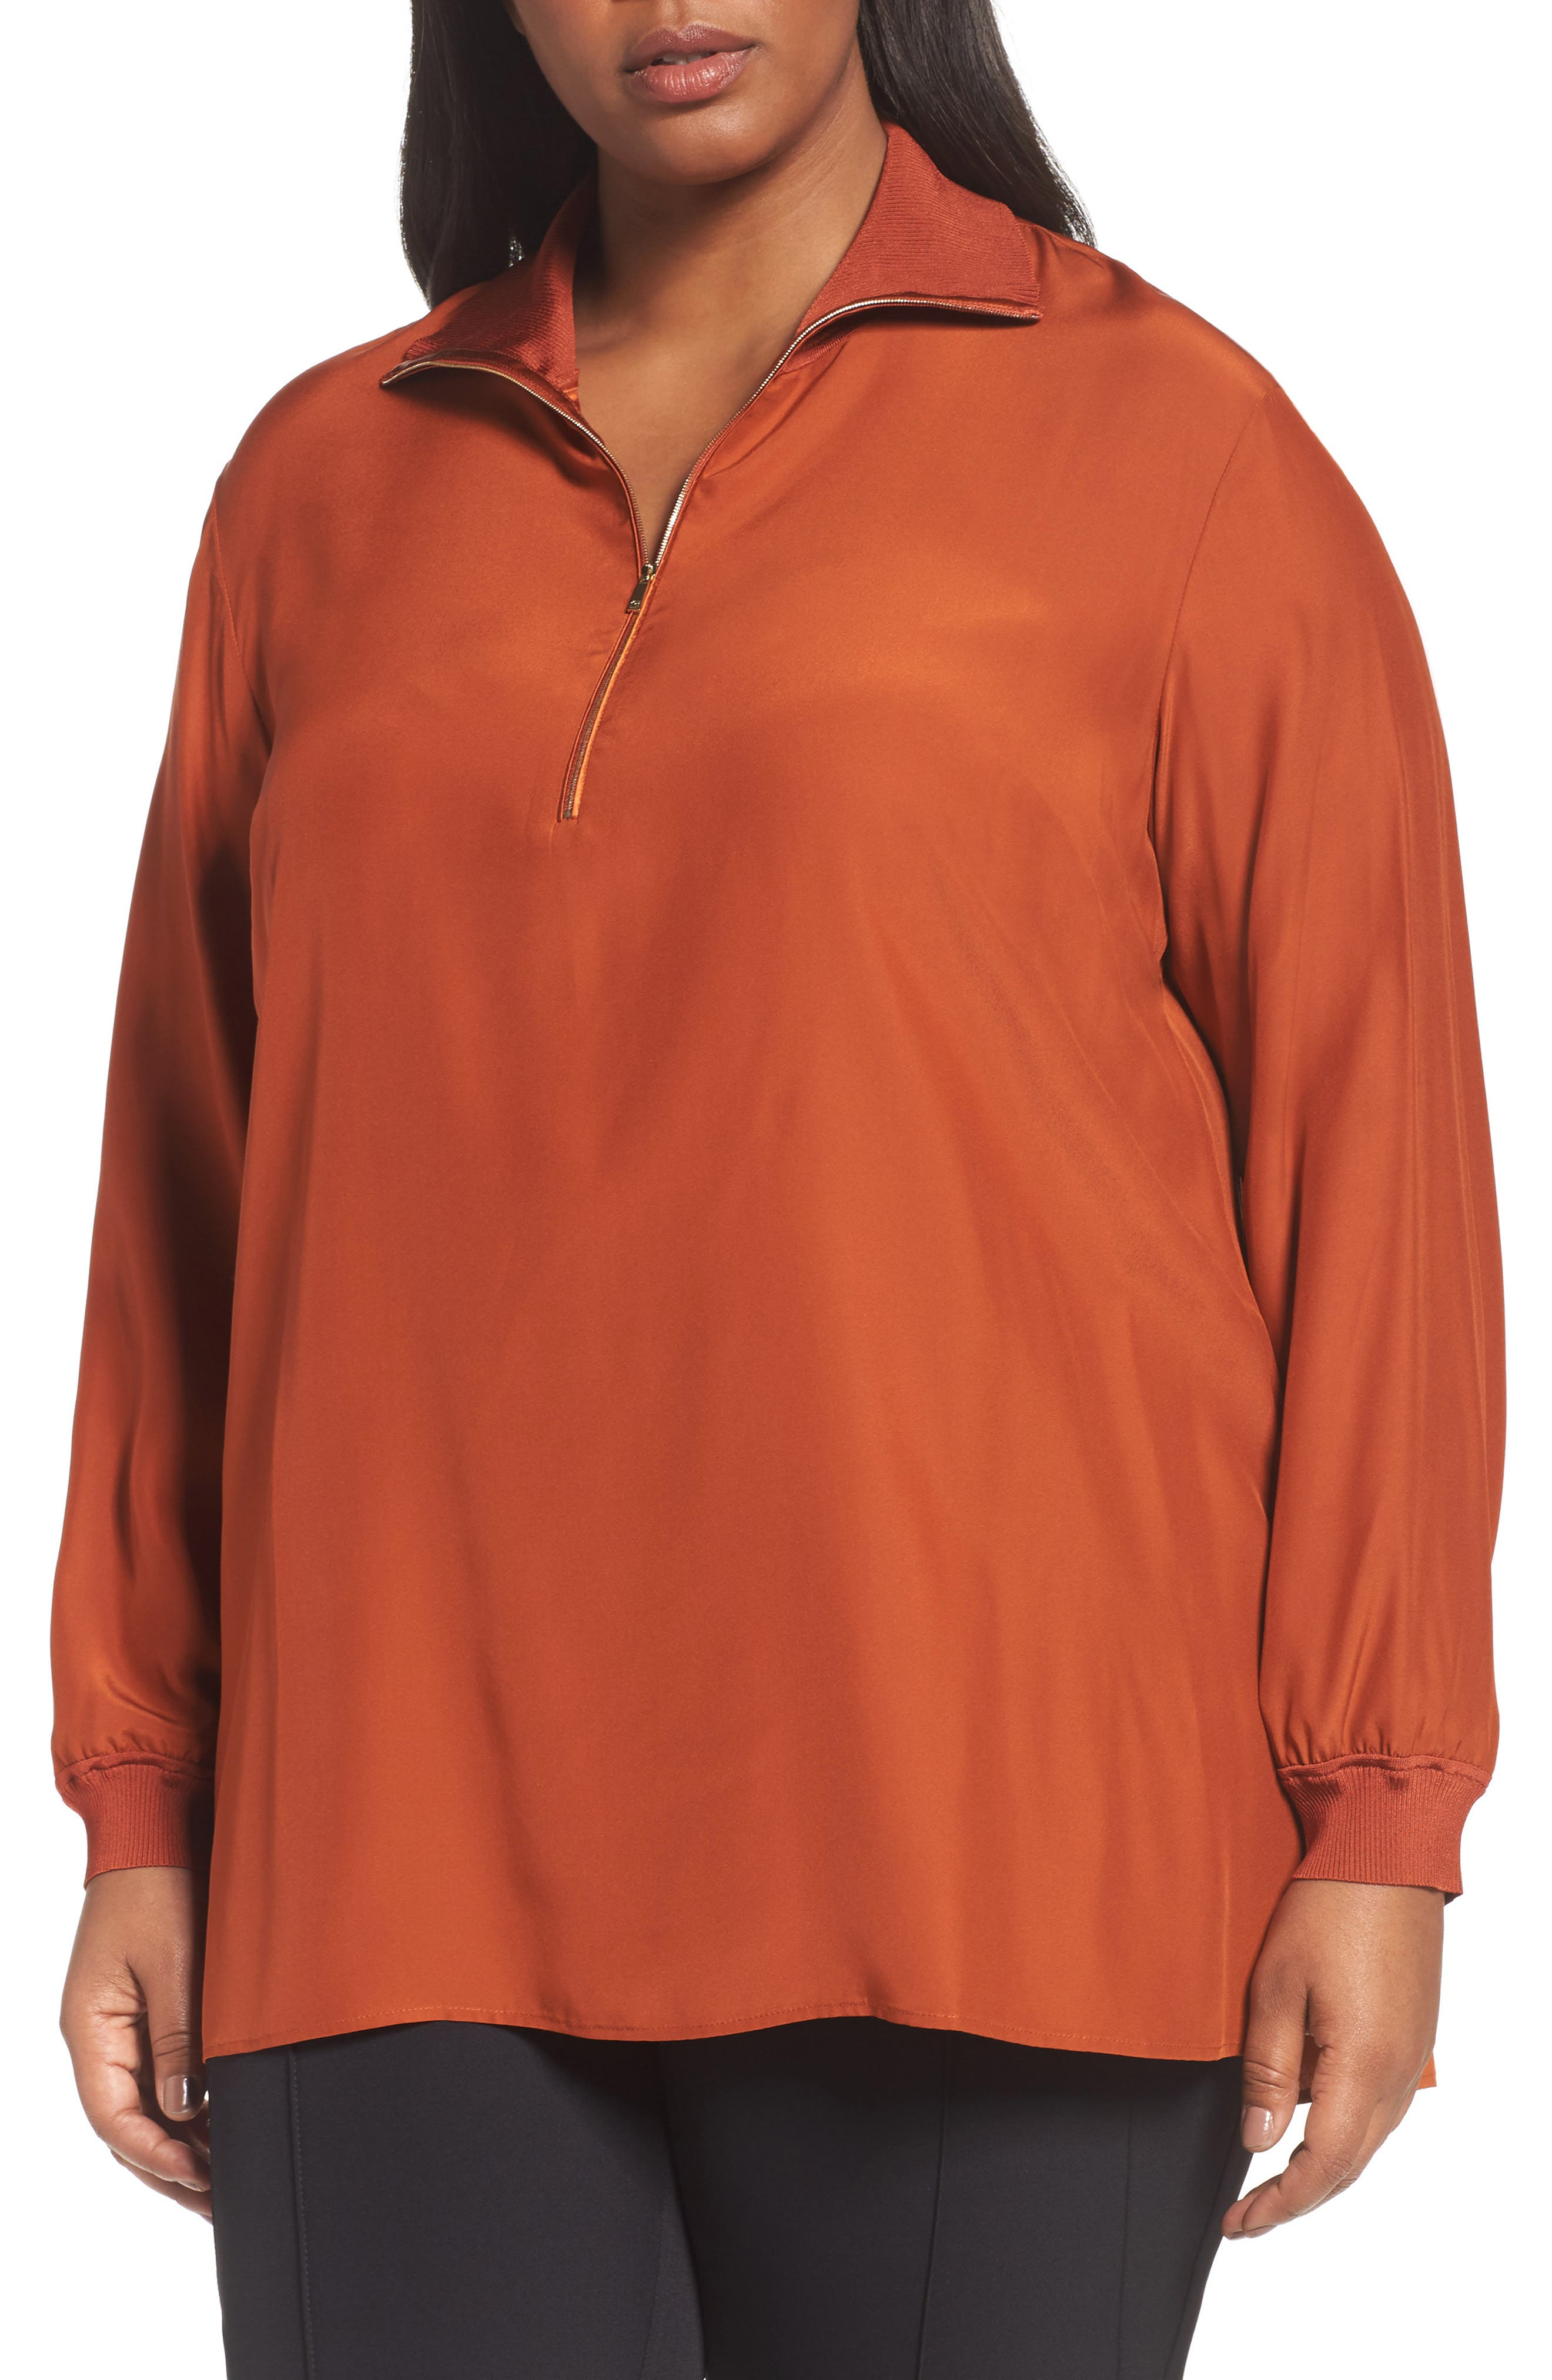 Lafayette Daryn V-Neck Zip Silk Blouse,                             Main thumbnail 1, color,                             Harvest